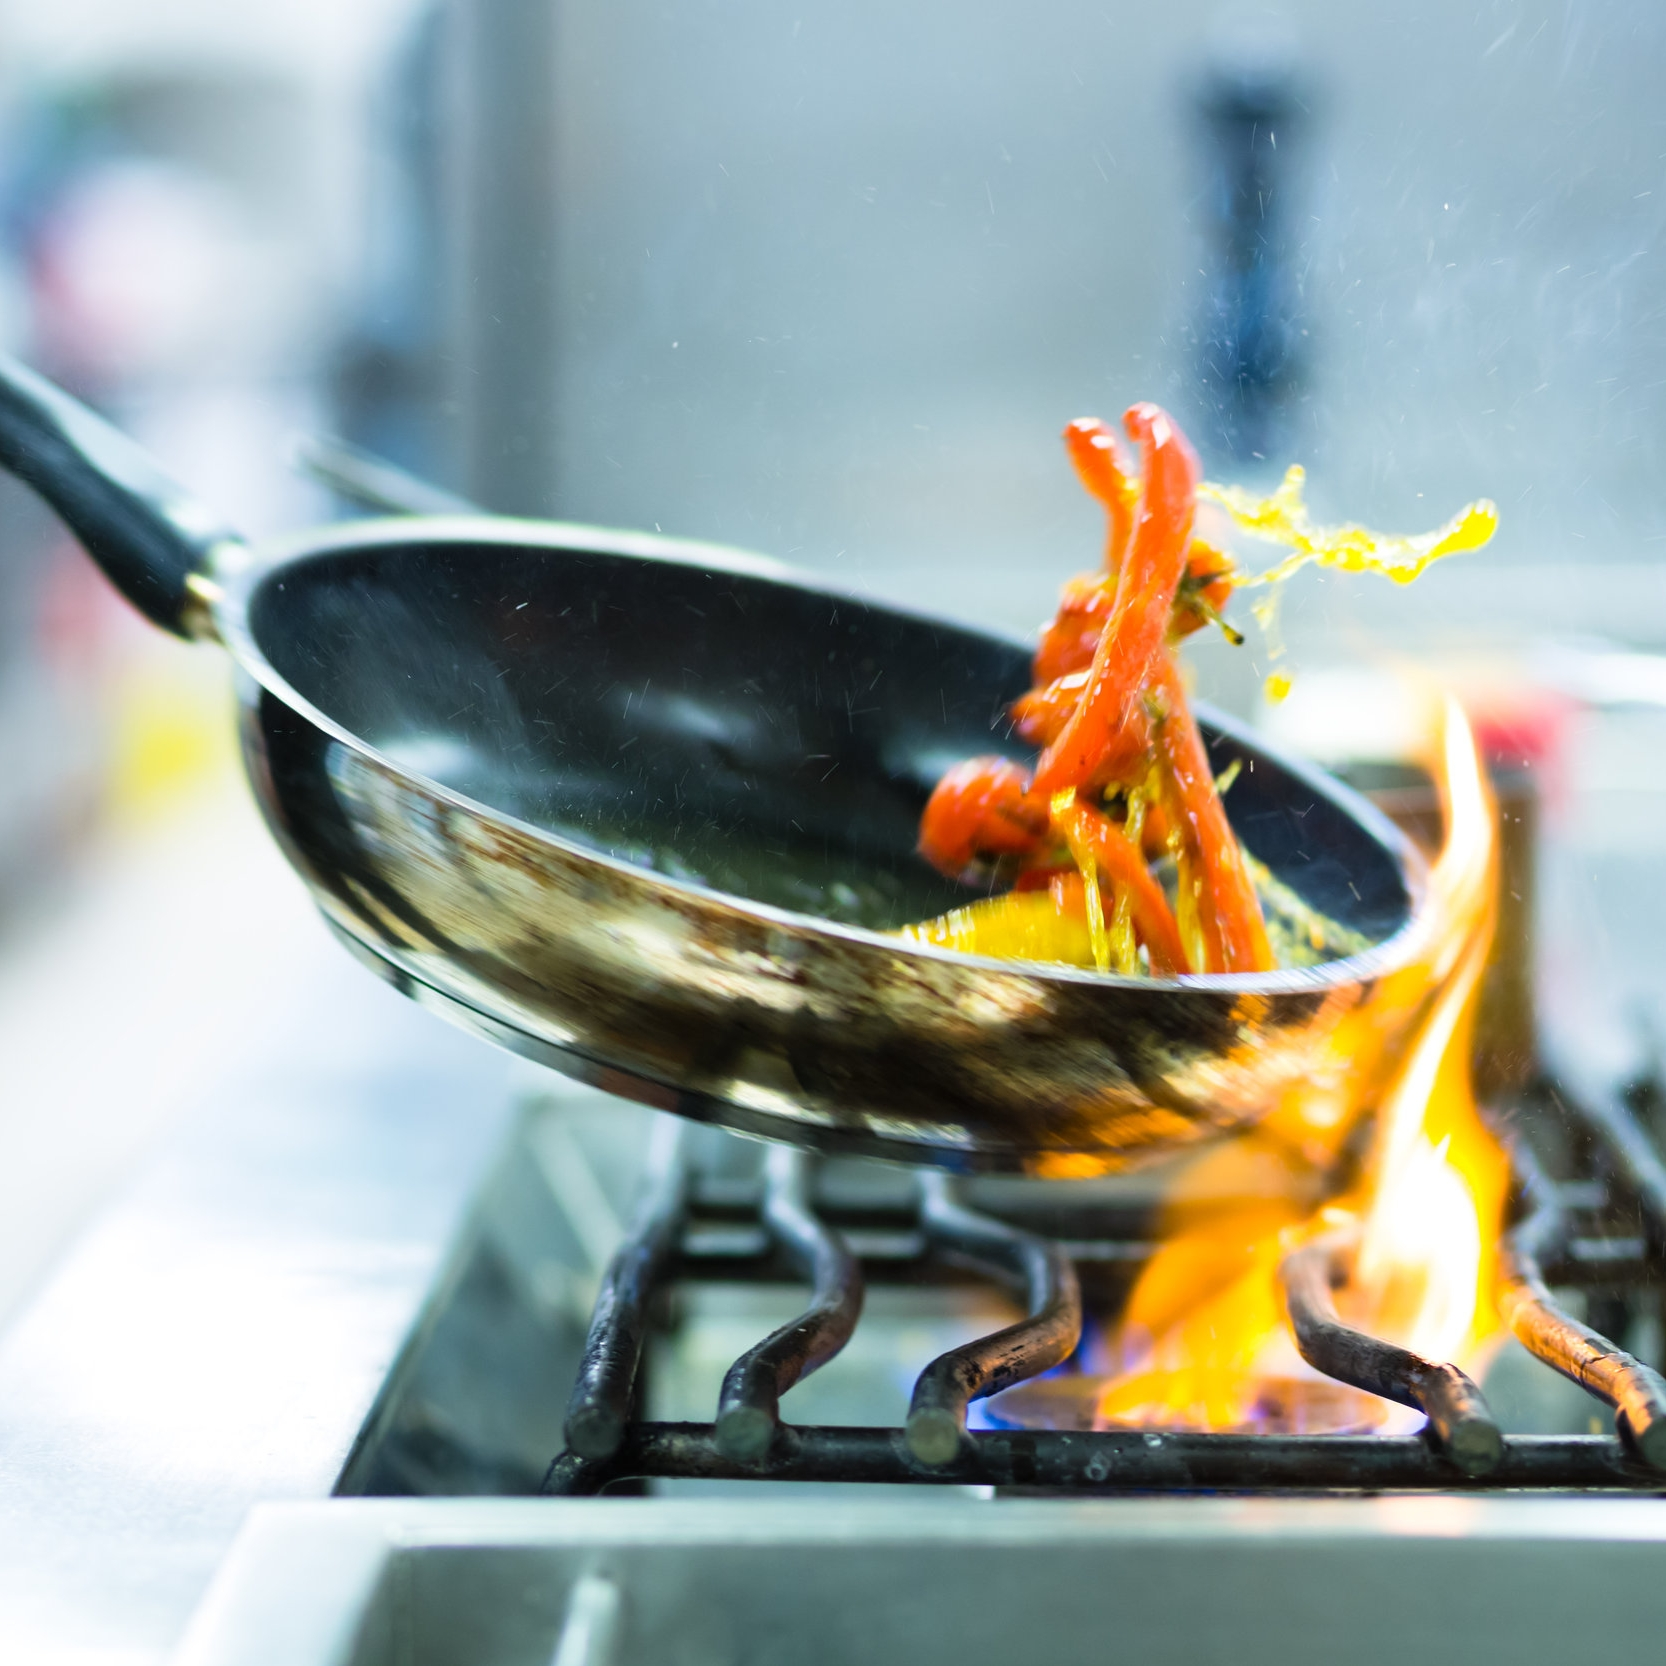 Restaurants / Commercial Kitchens